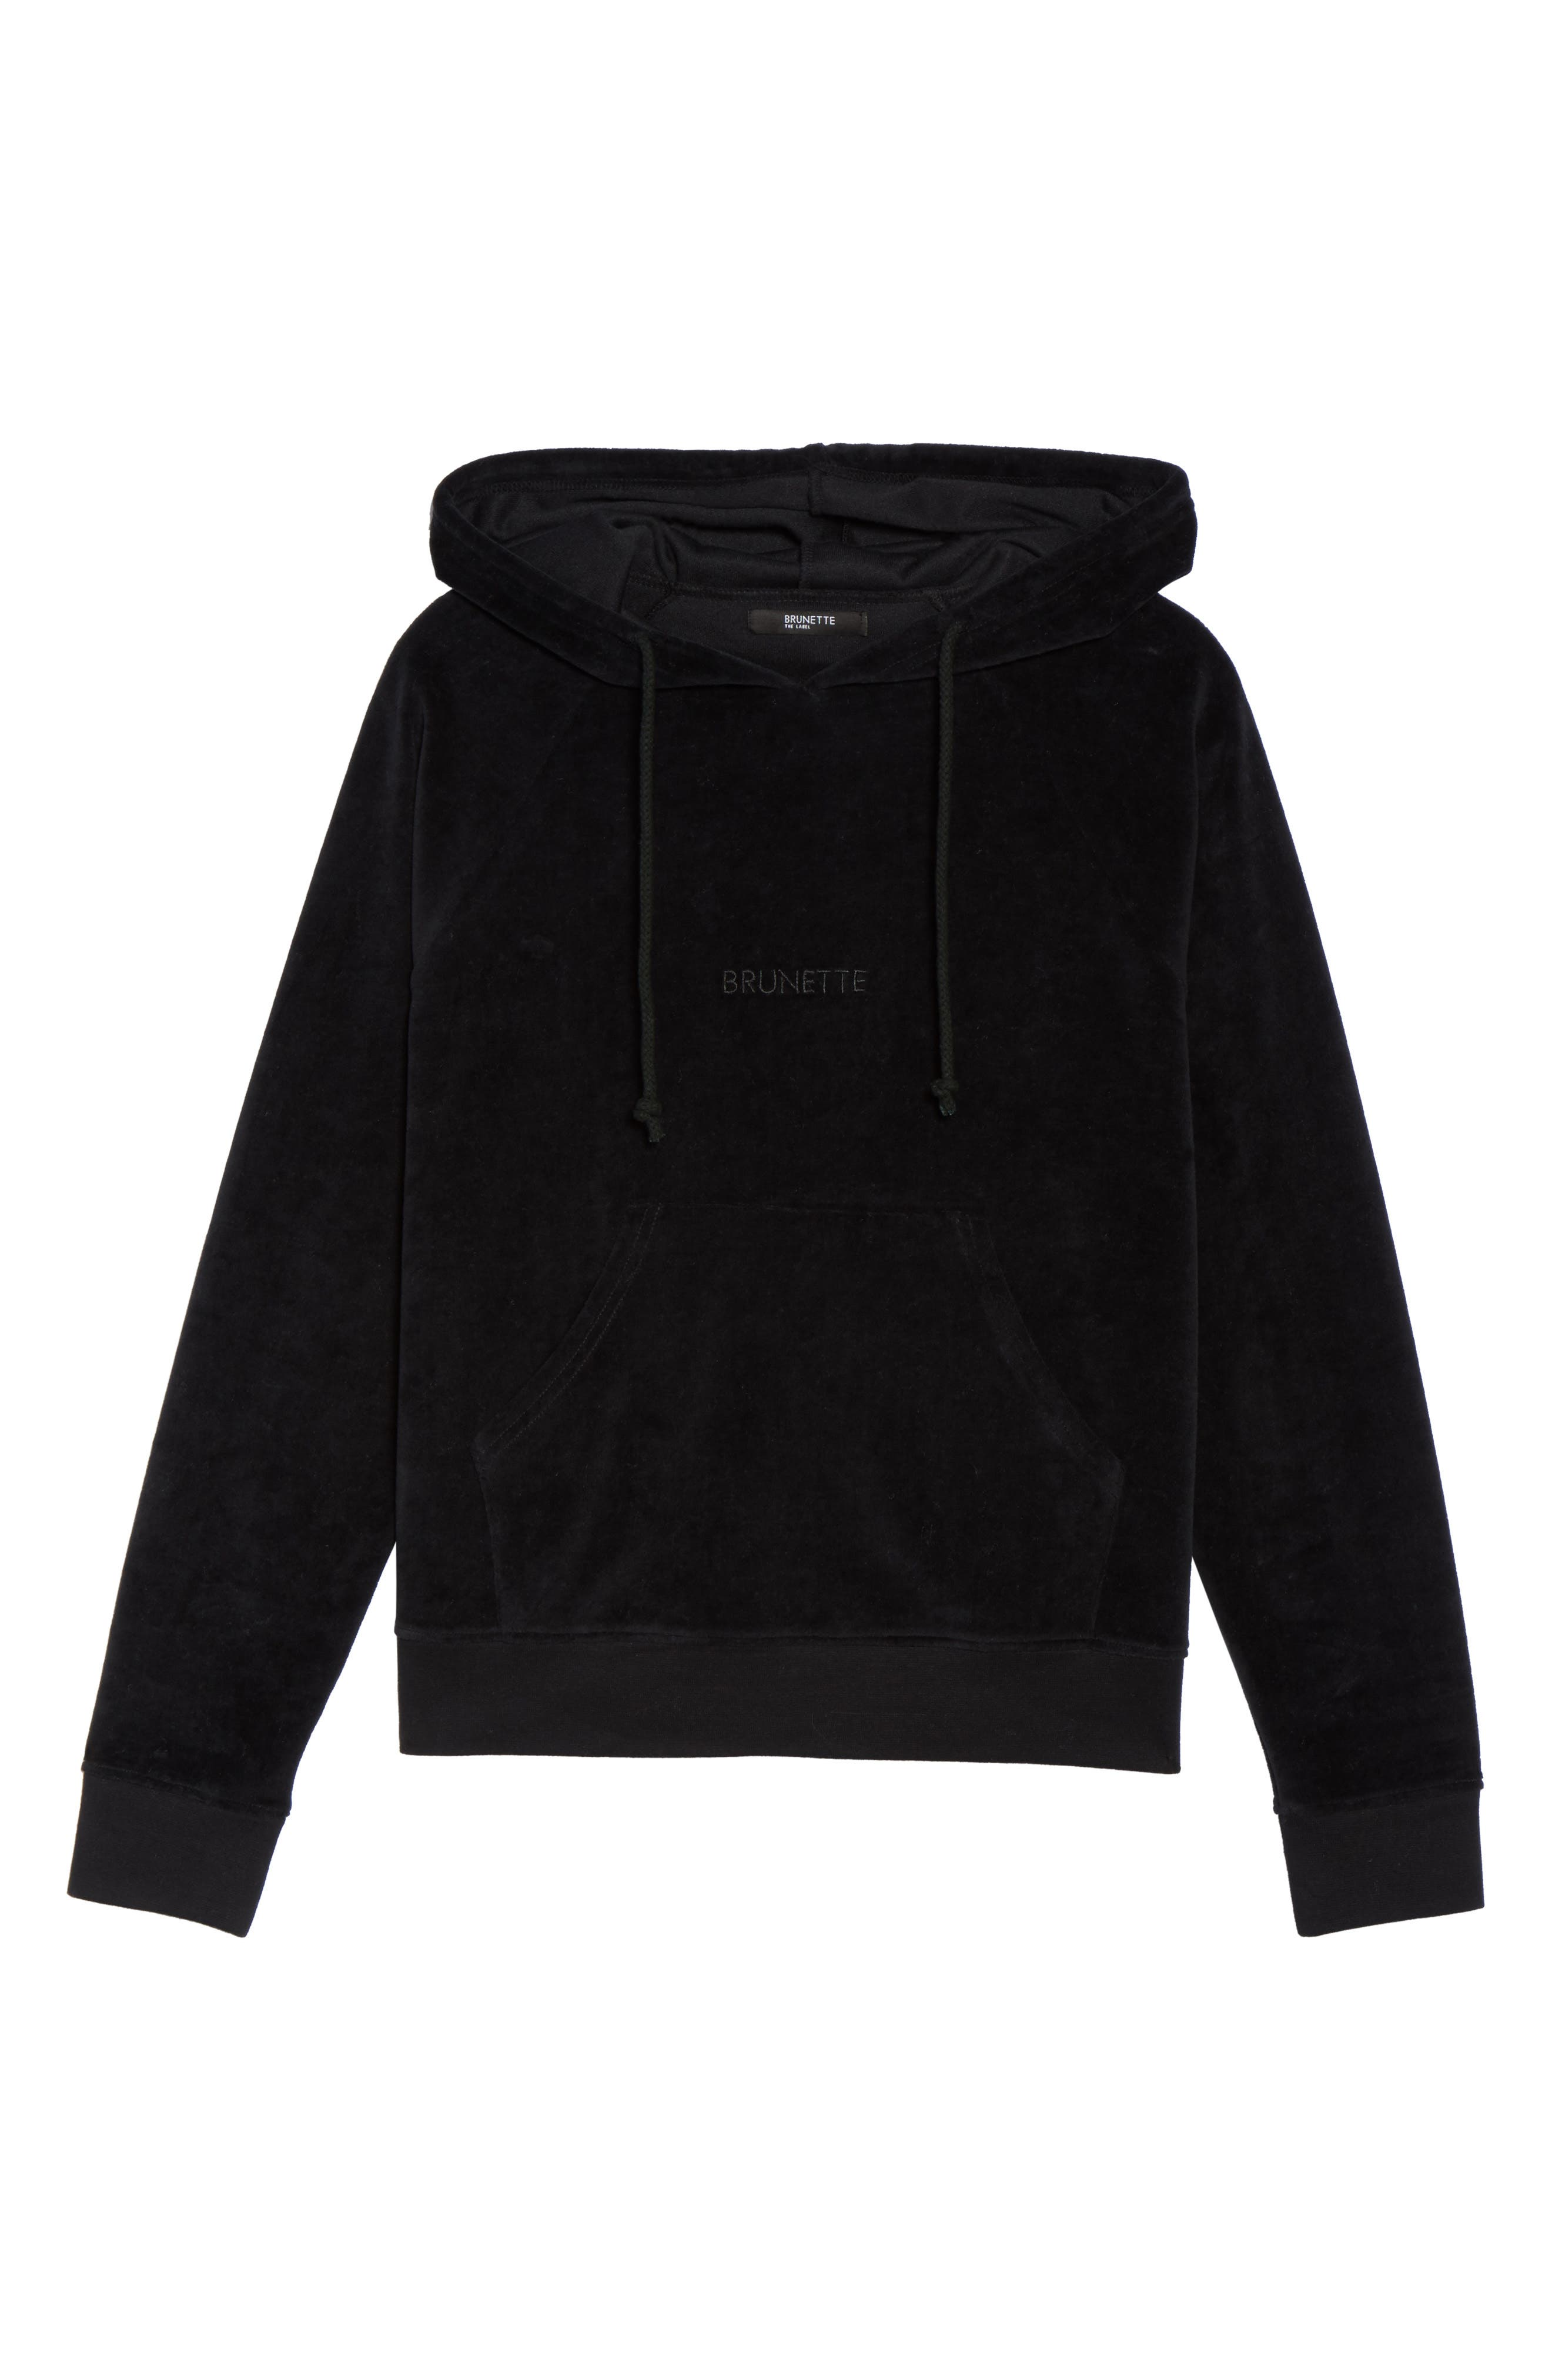 Brunette Embroidered Velour Hoodie,                             Alternate thumbnail 6, color,